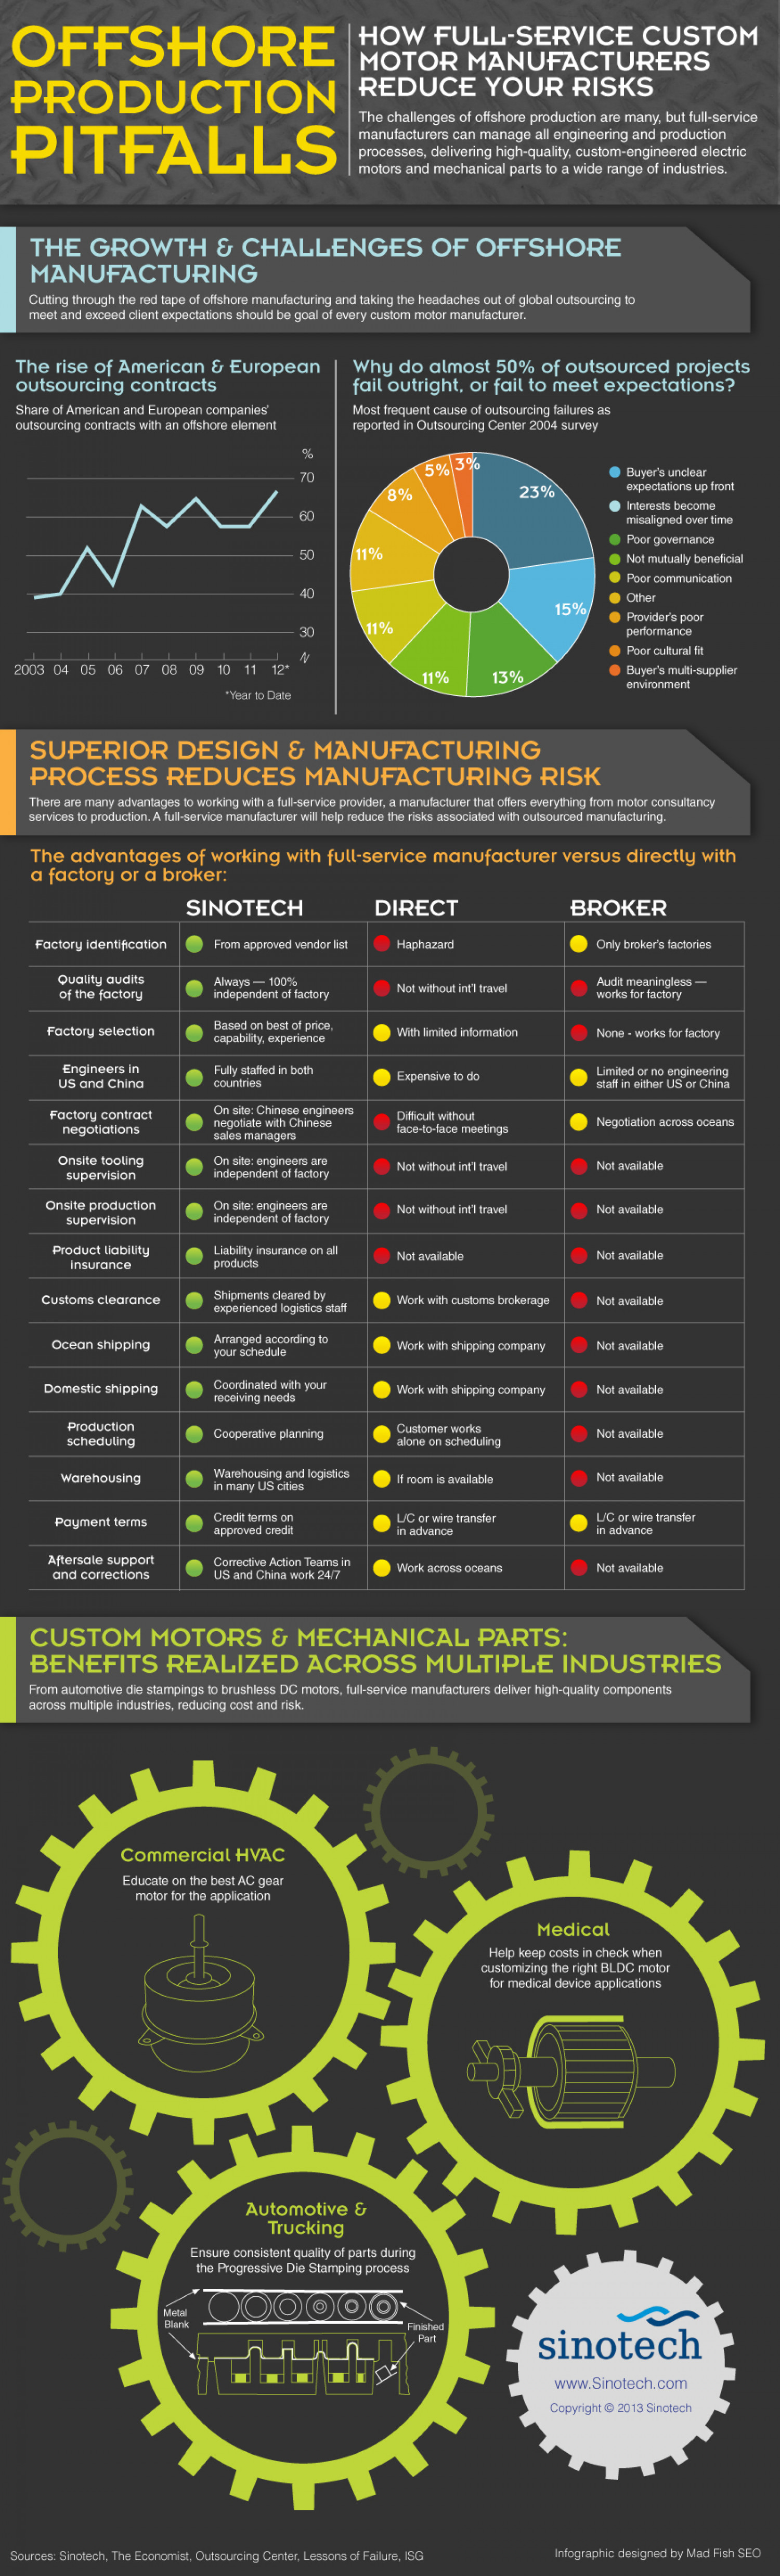 Offshore Production Pitfalls: How Full-Service Custom Motor Manufacturers Reduce Your Risks  Infographic